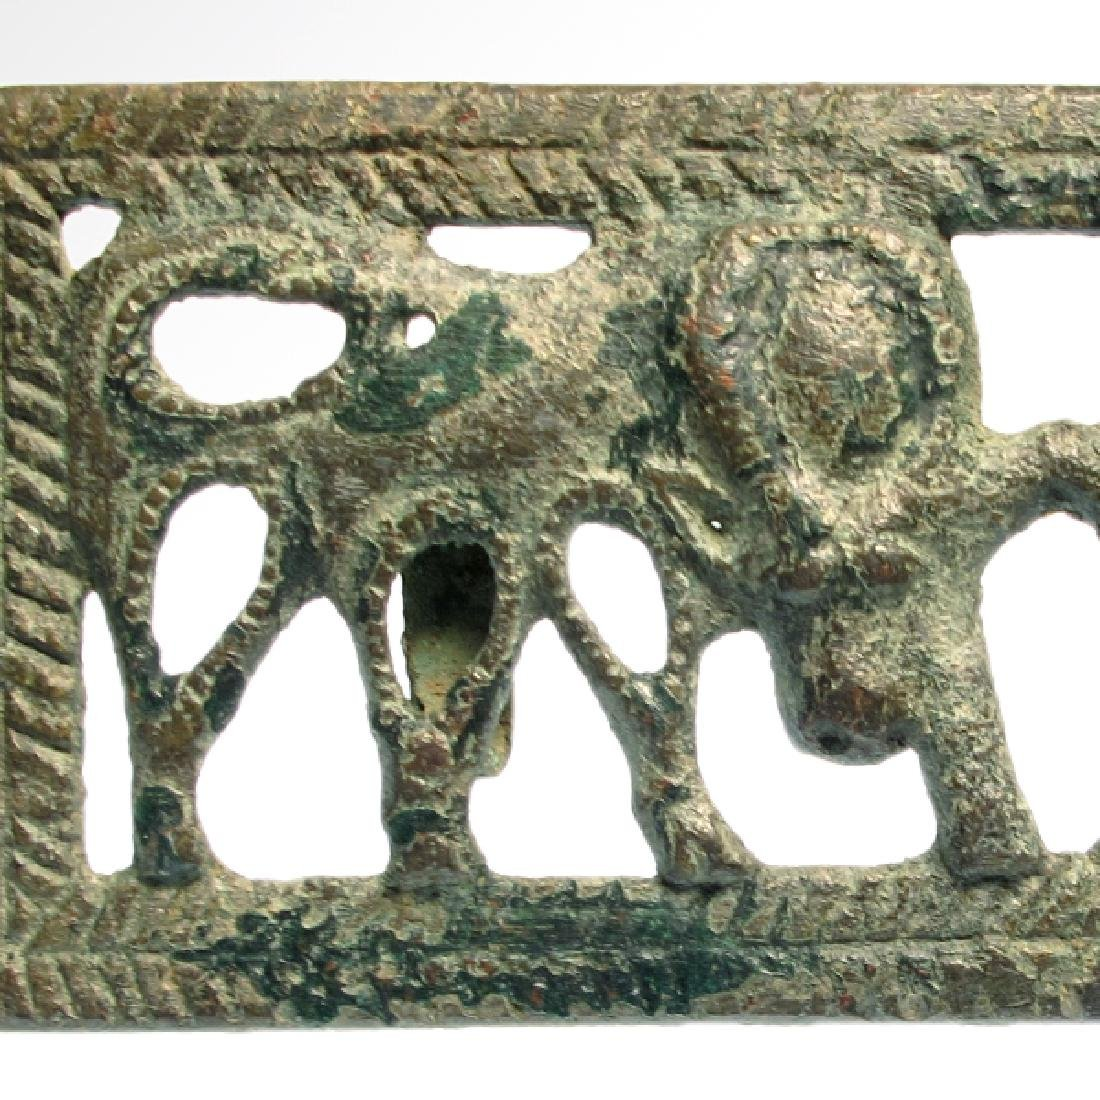 Ordos Open-Work Plaque with Grazing Bulls, c. 500 B.C. - 3